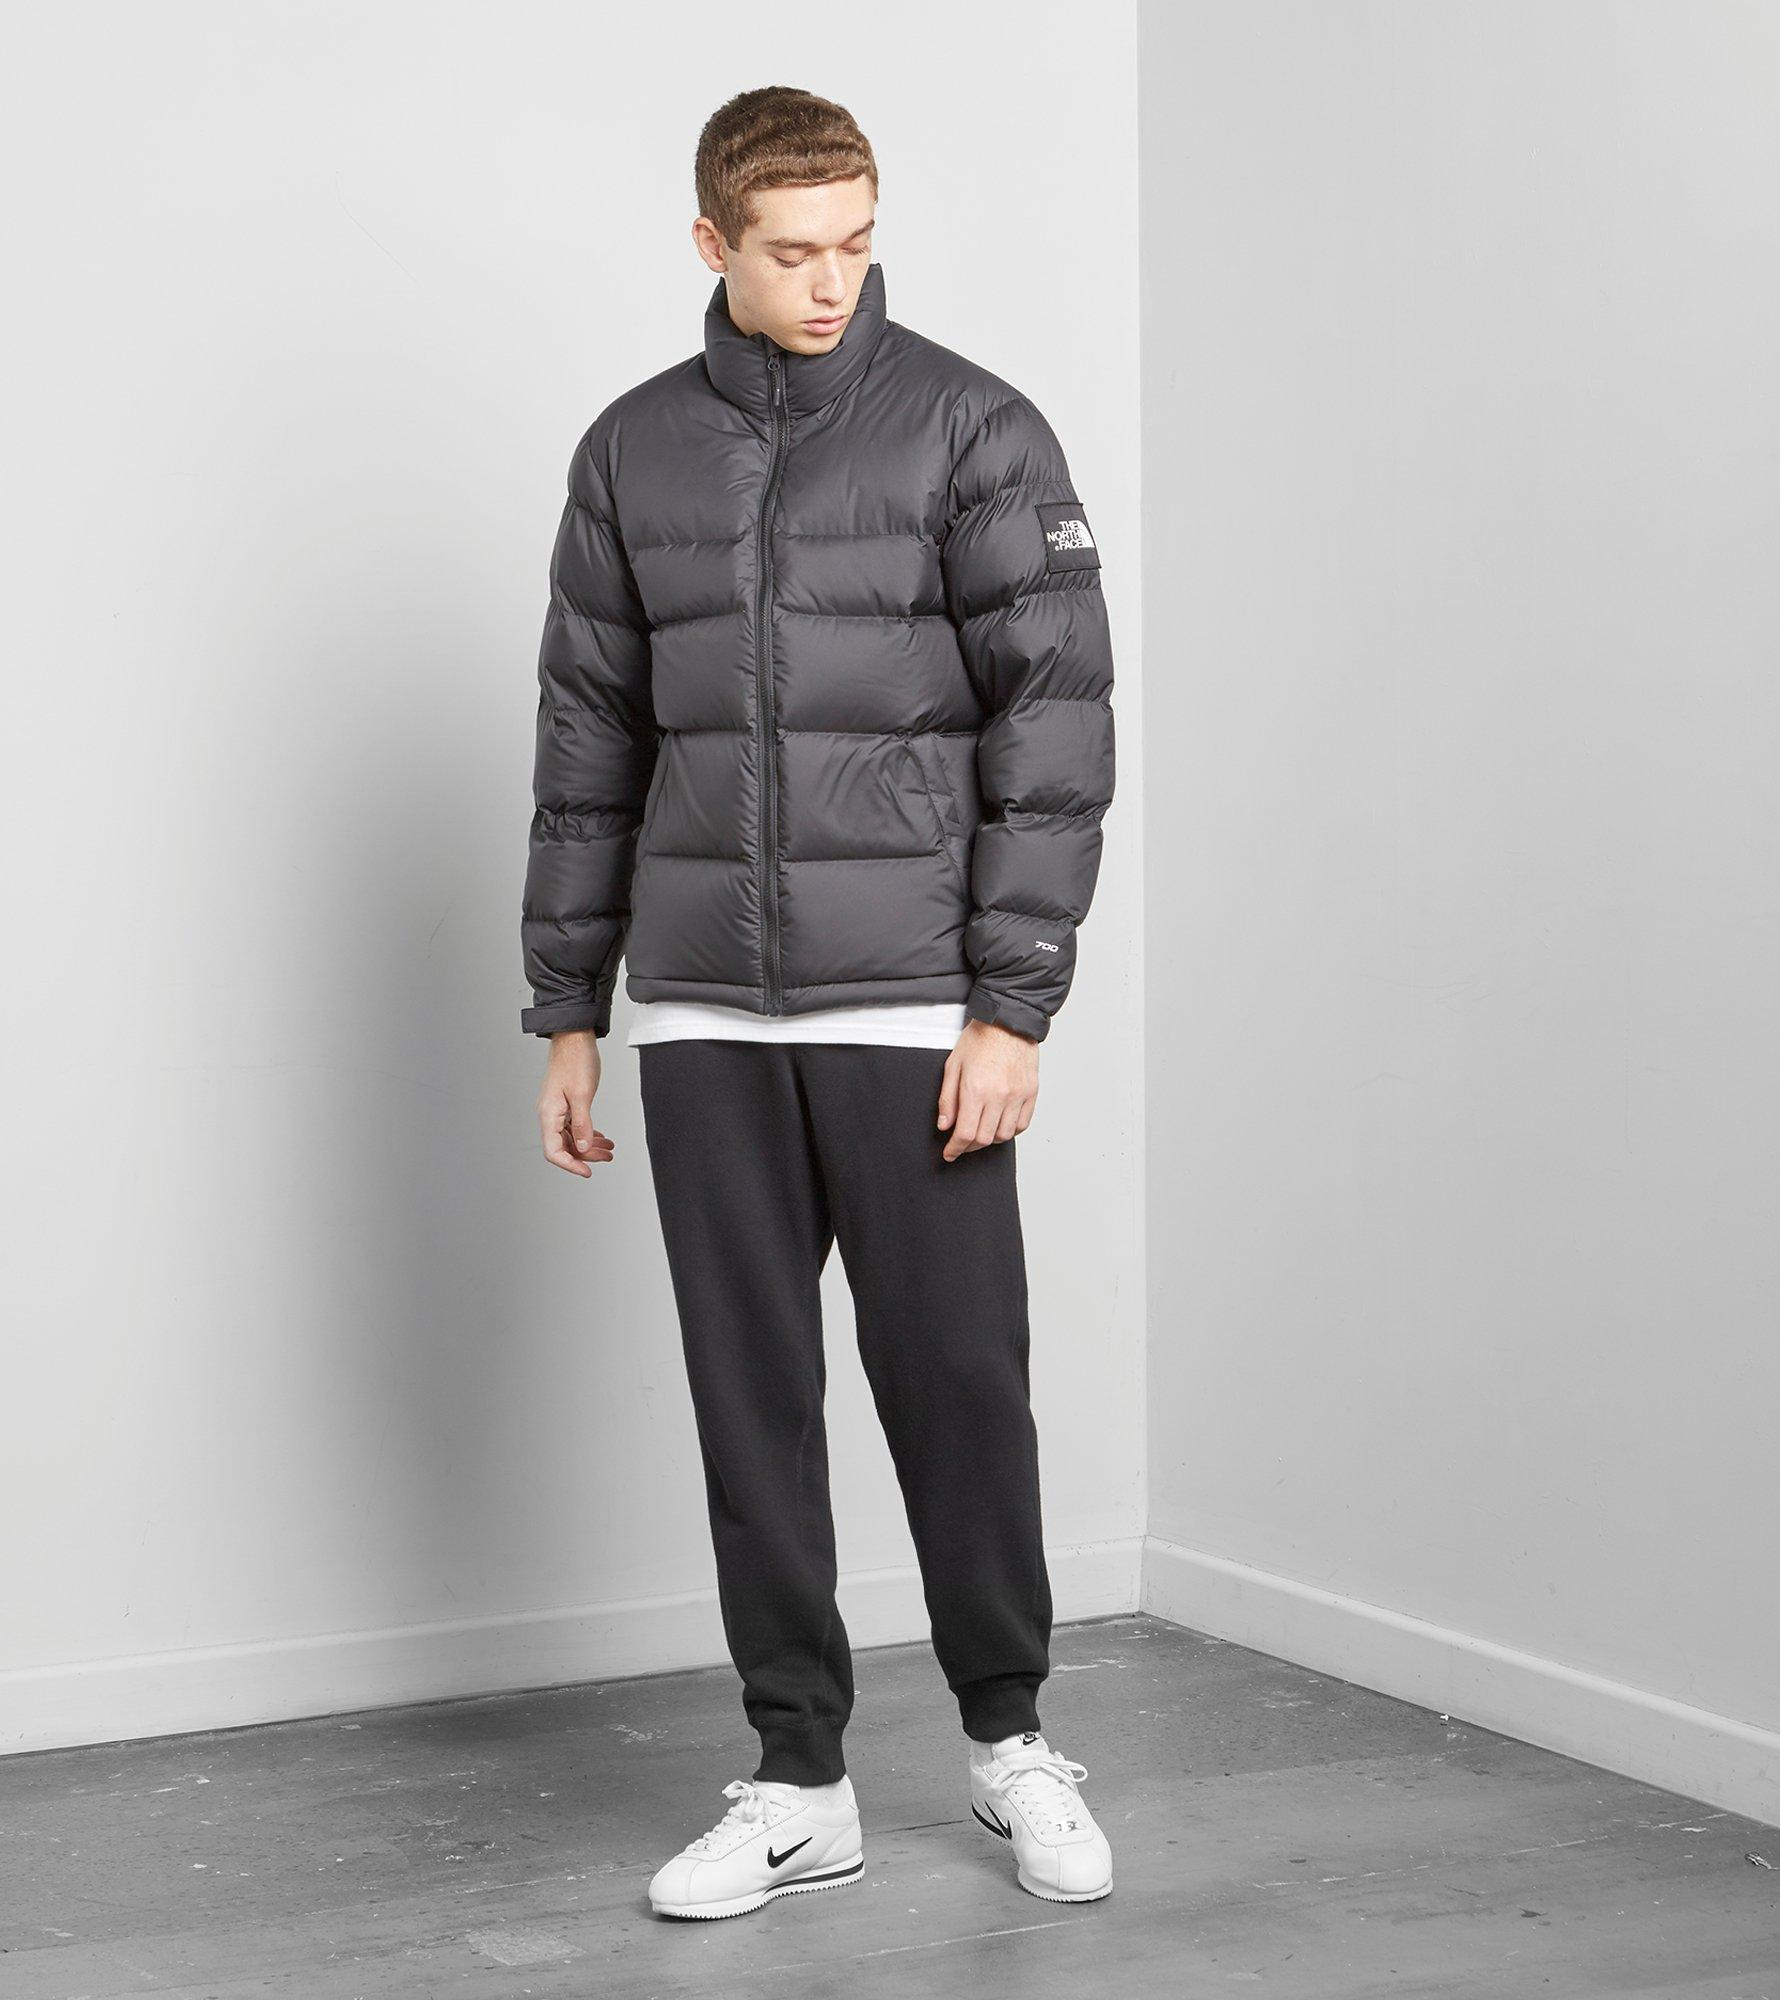 ... where to buy lyst the north face 1992 nuptse jacket in black for men  8142d a9a6c fe3e033bb